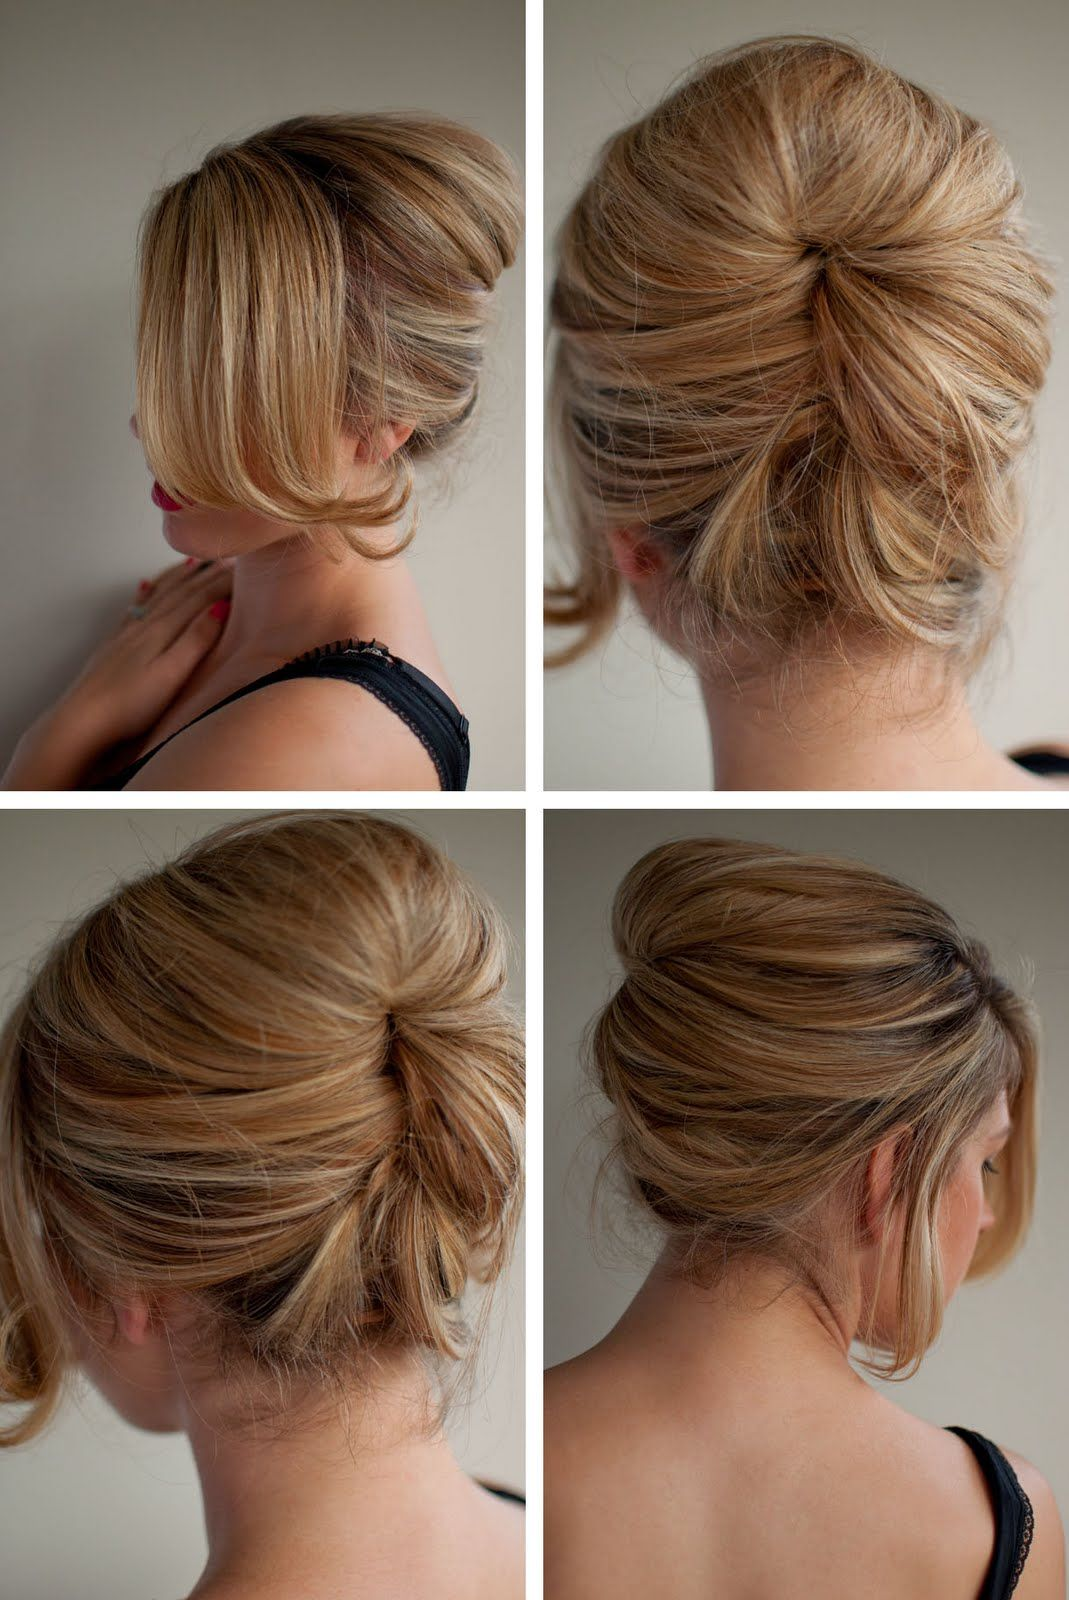 30 days of twist pin hairstyles day 8 pinterest hair style 30 days of twist pin hairstyles day 8 hair romance solutioingenieria Images